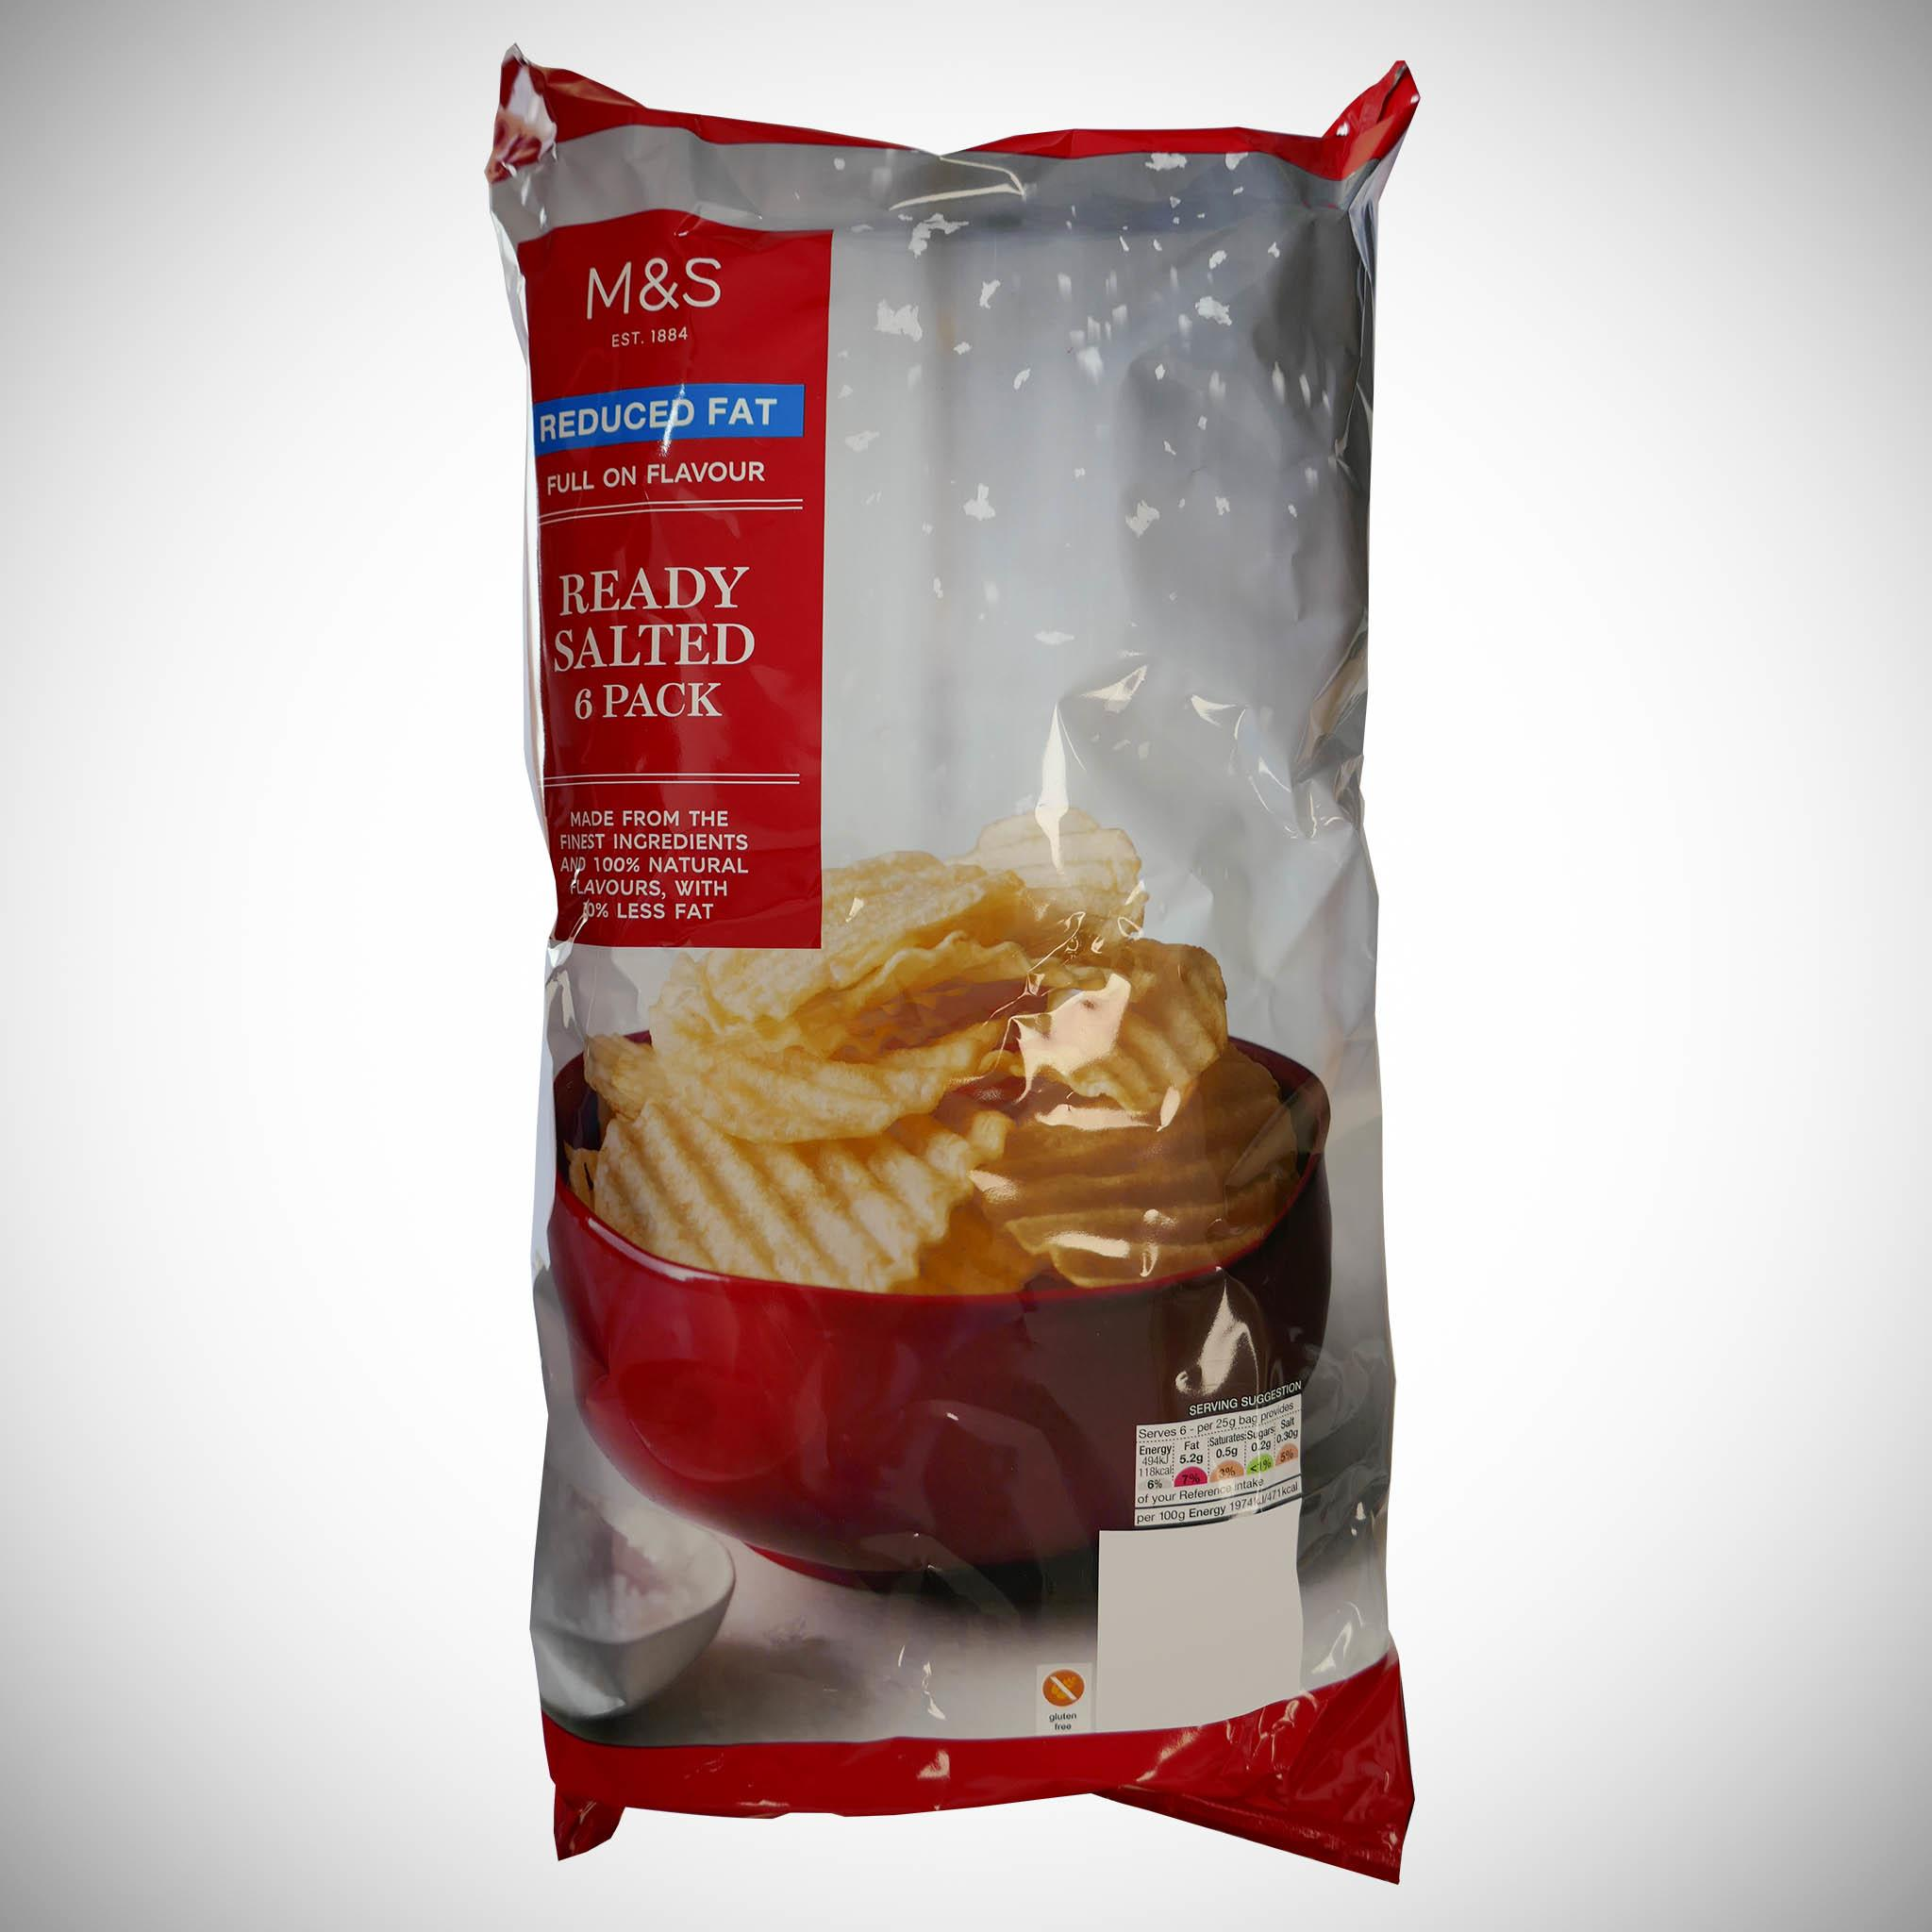 Reduced Fat Ready Salted Crisps